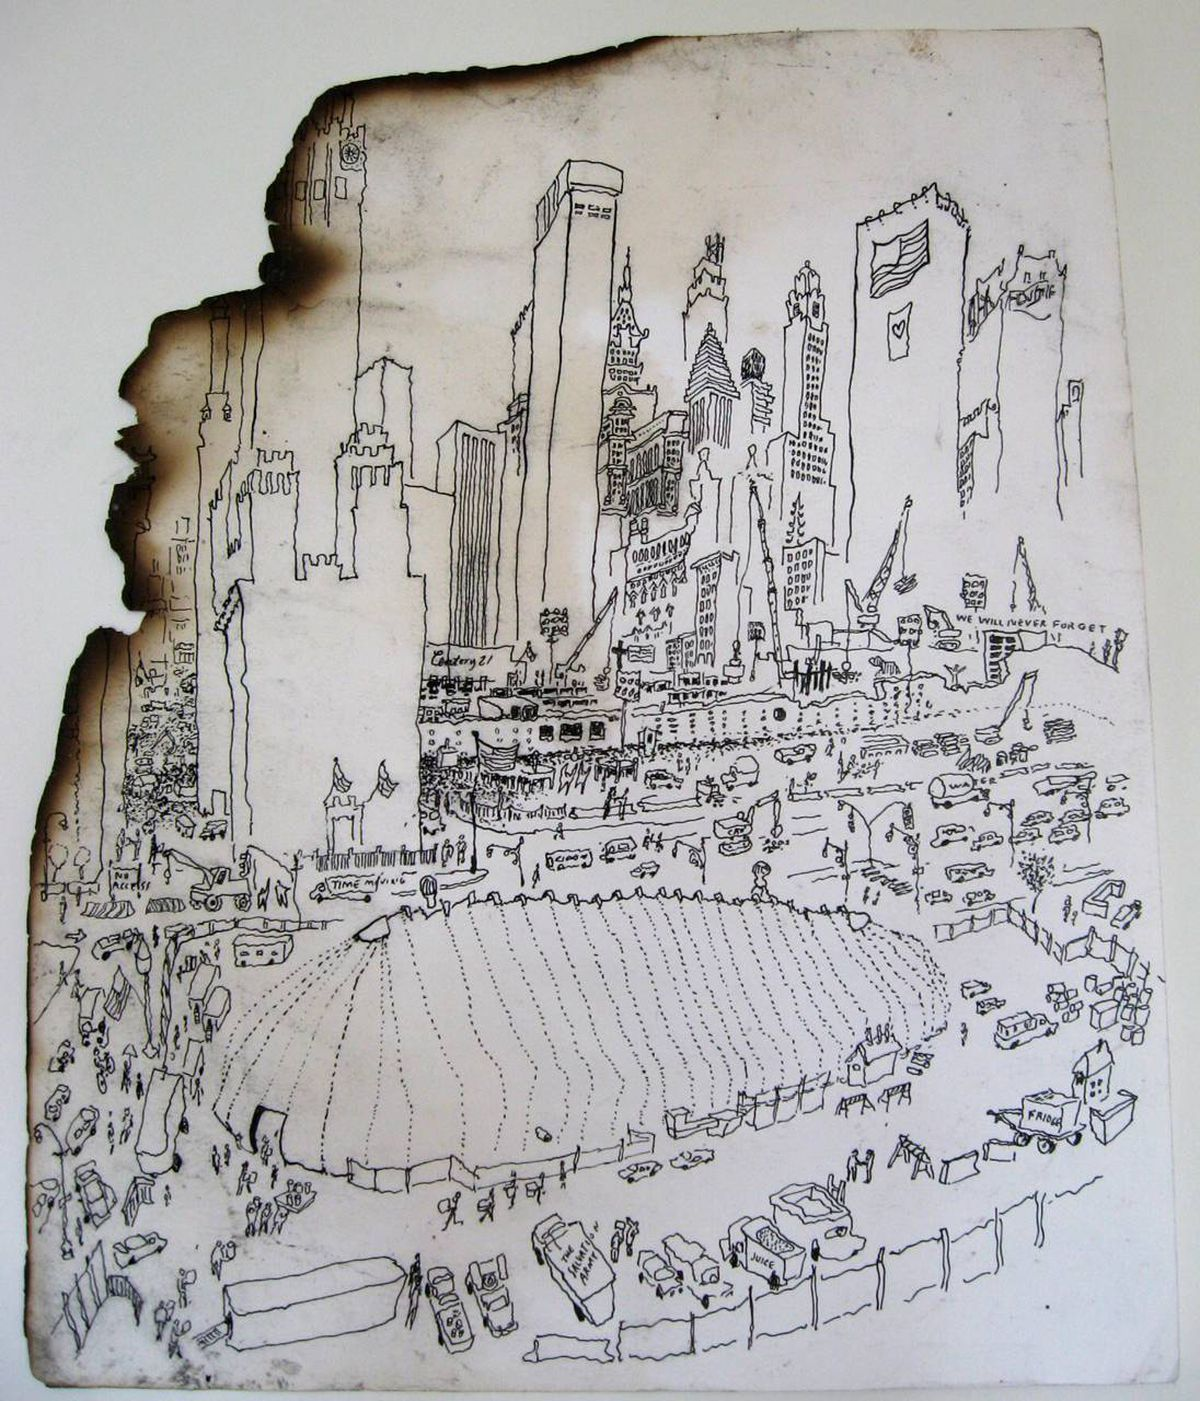 Toronto Artist's 9/11 Drawings 'a Testament To Survival